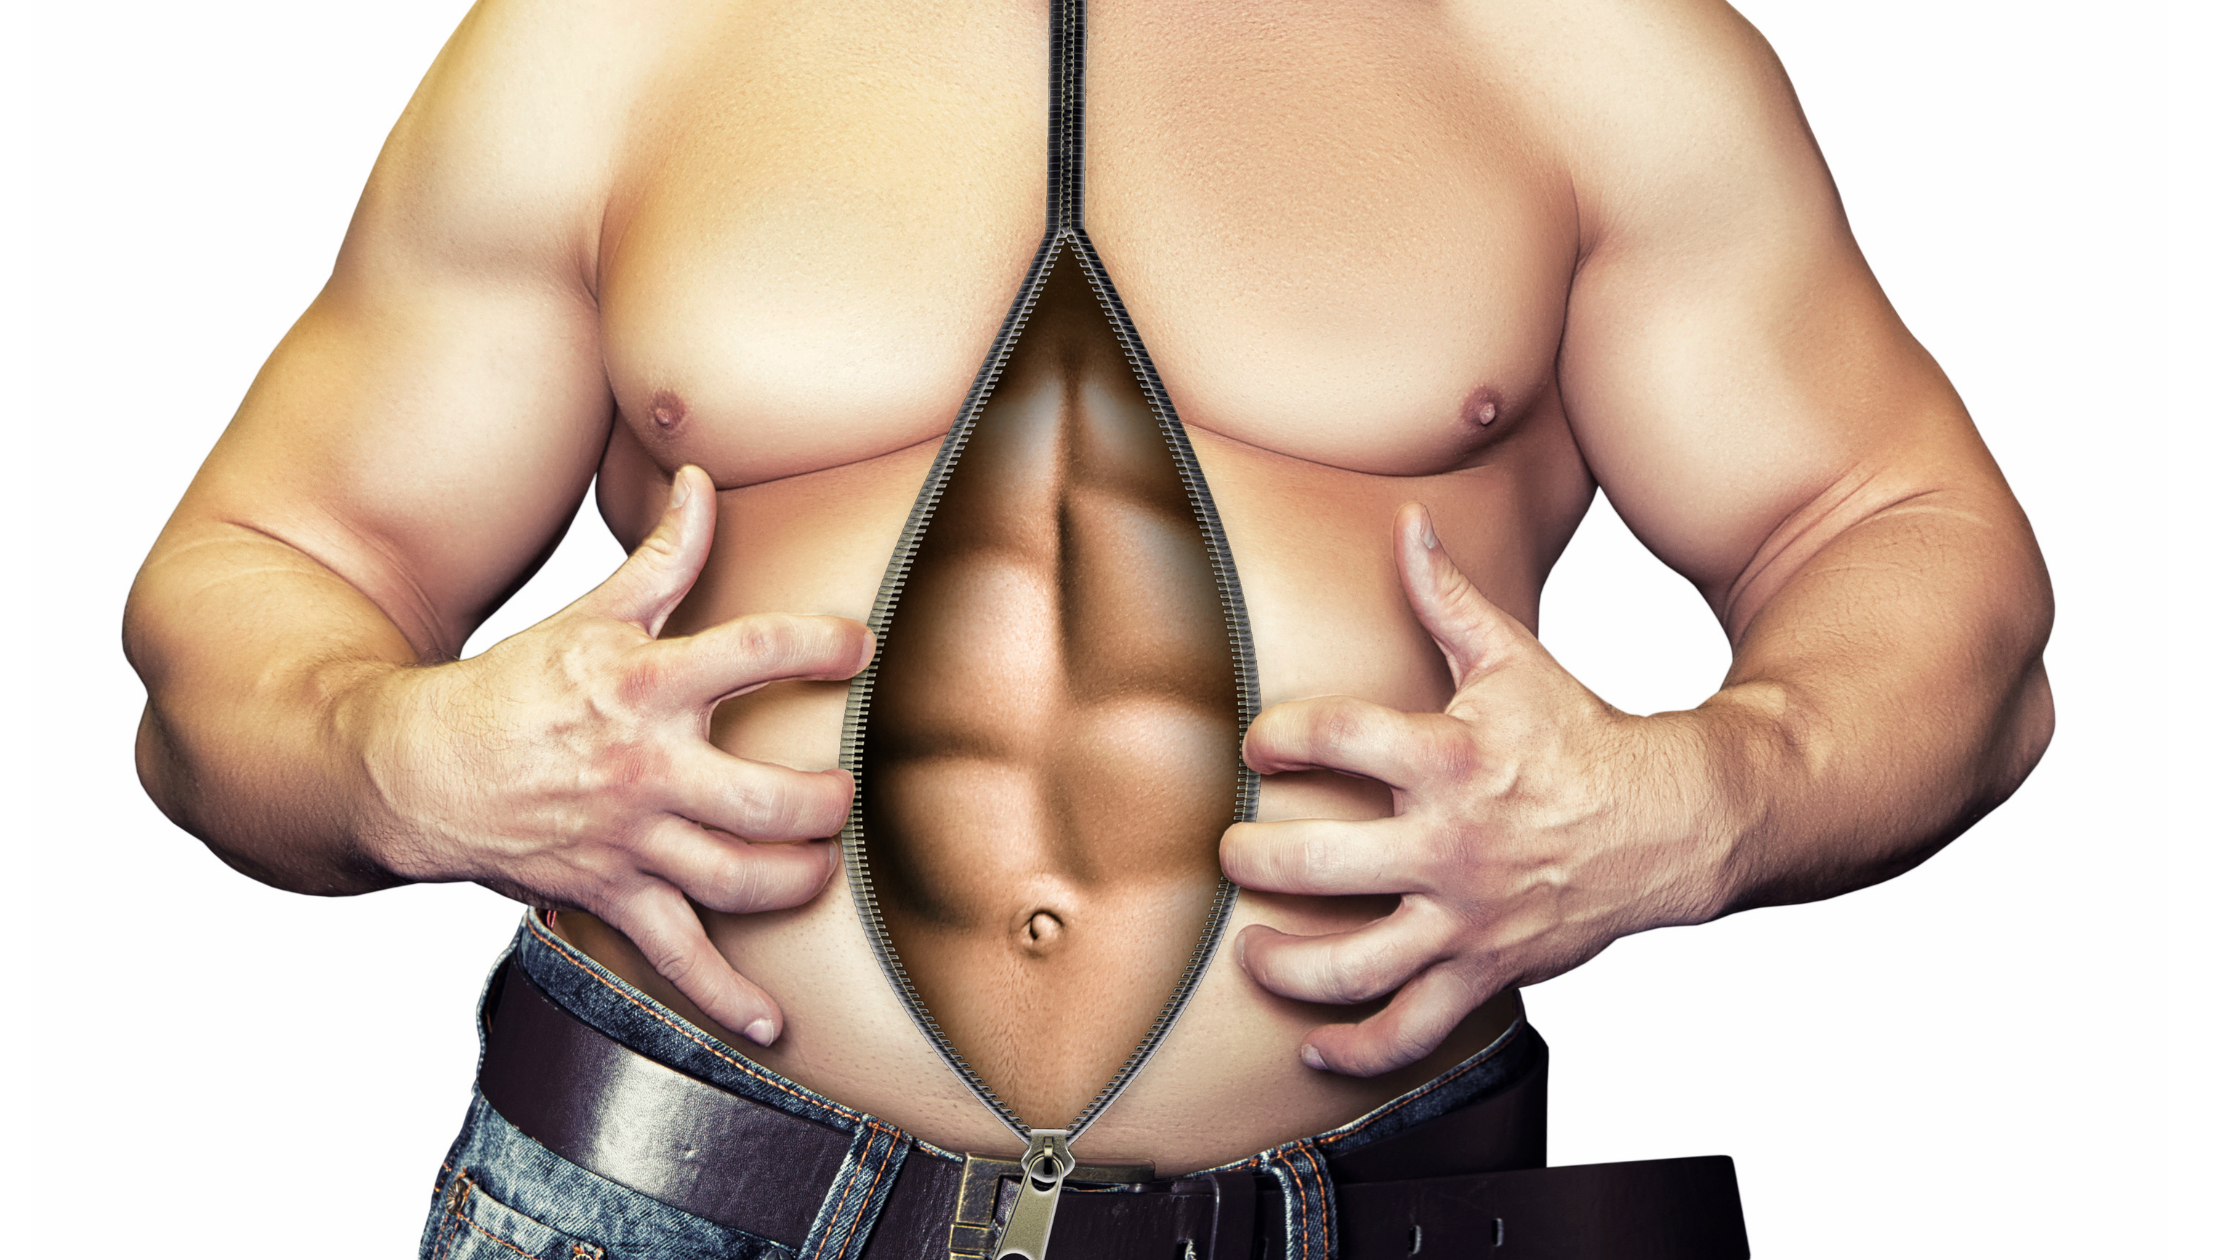 THE 3 AB EXERCISES YOU NEED TO AVOID